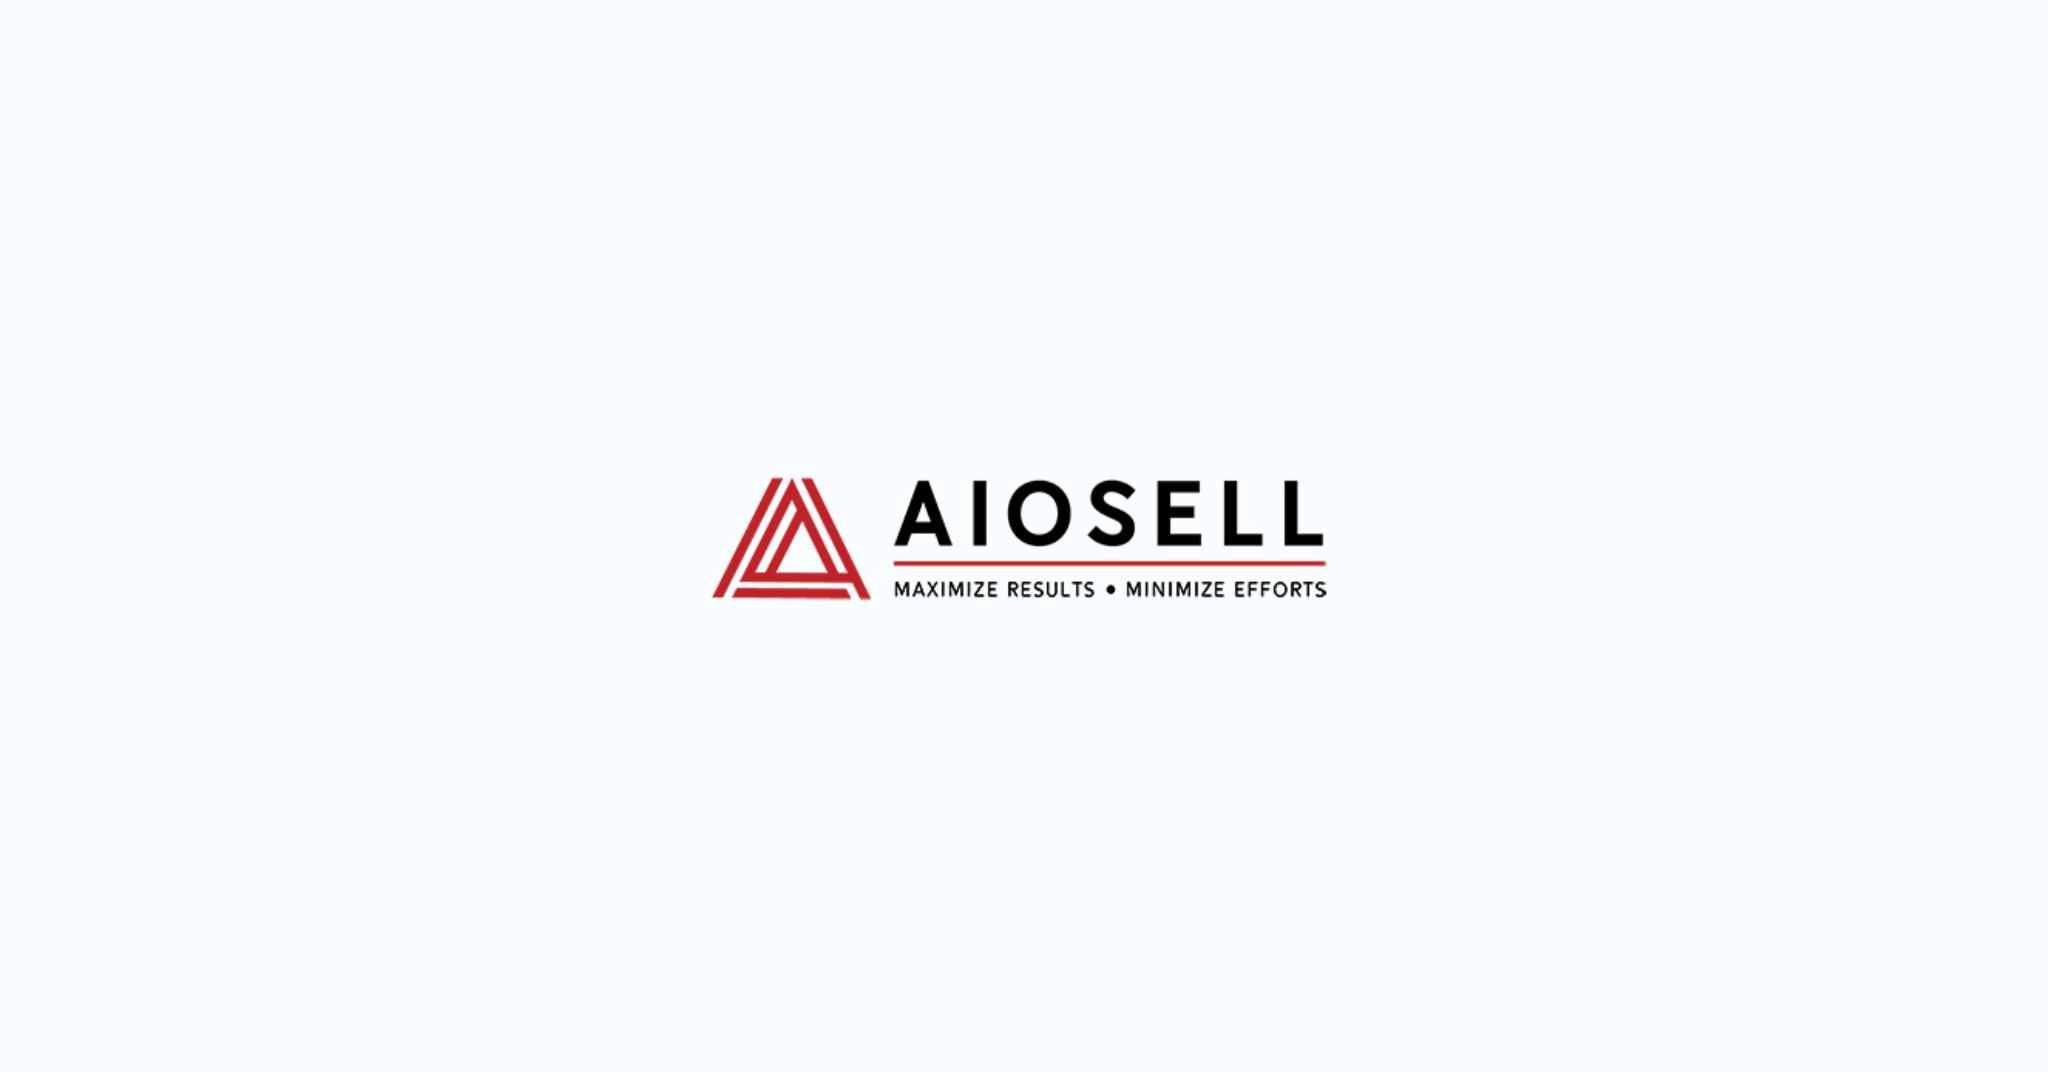 Aiosell